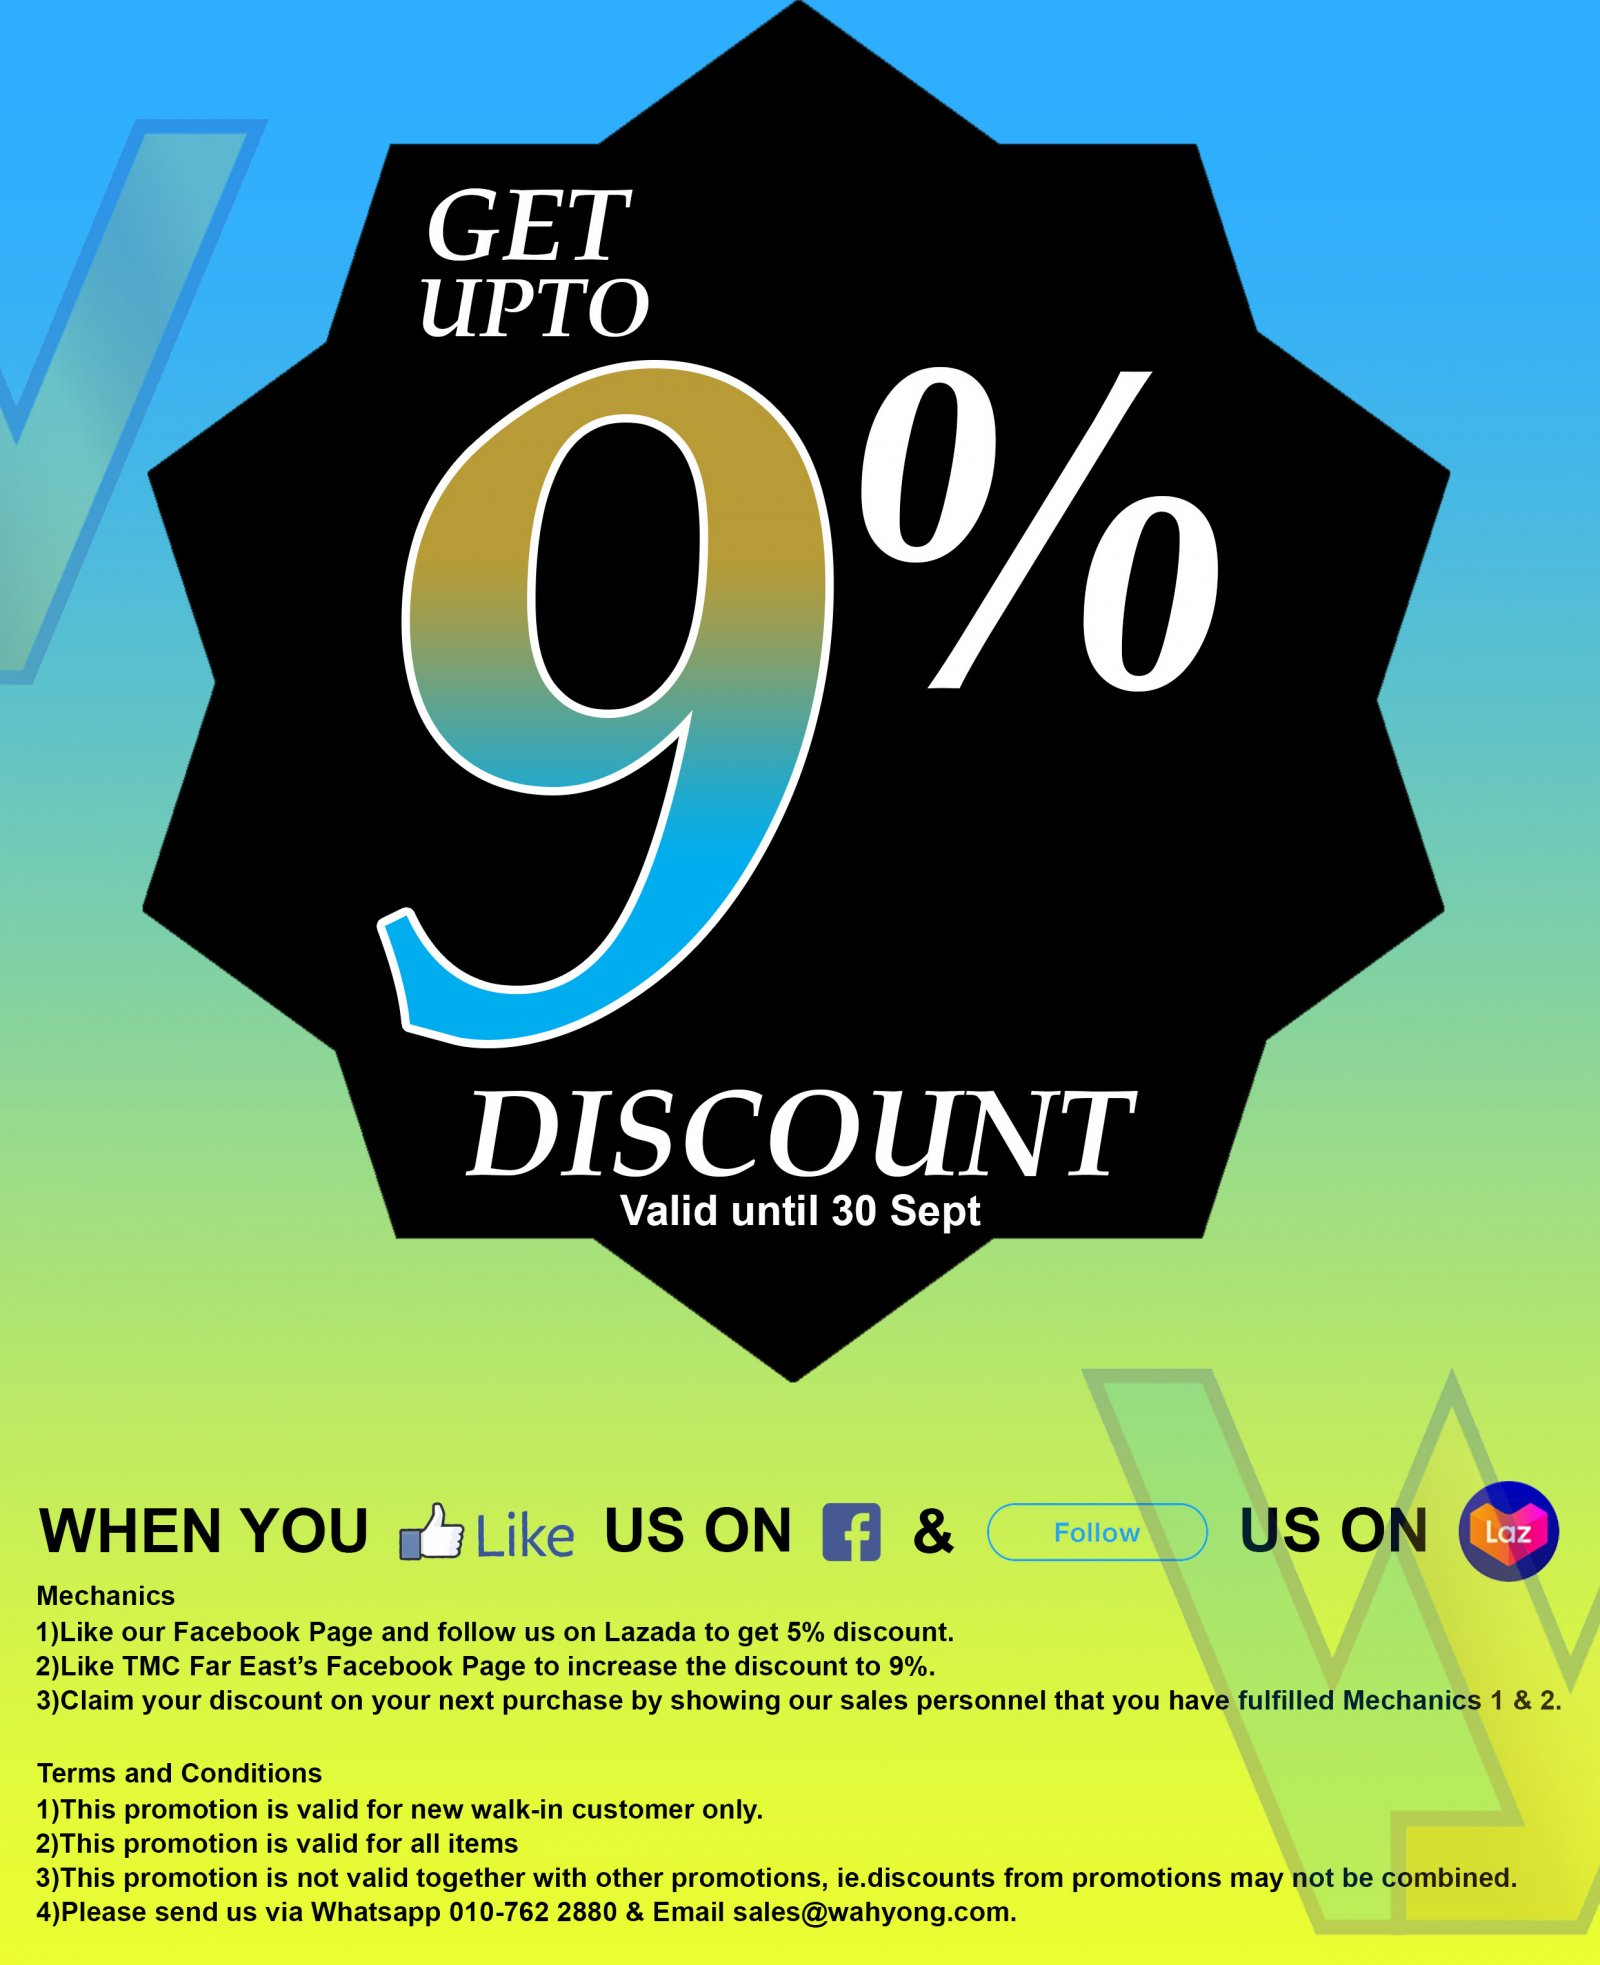 Get up to 9% Discount for all items